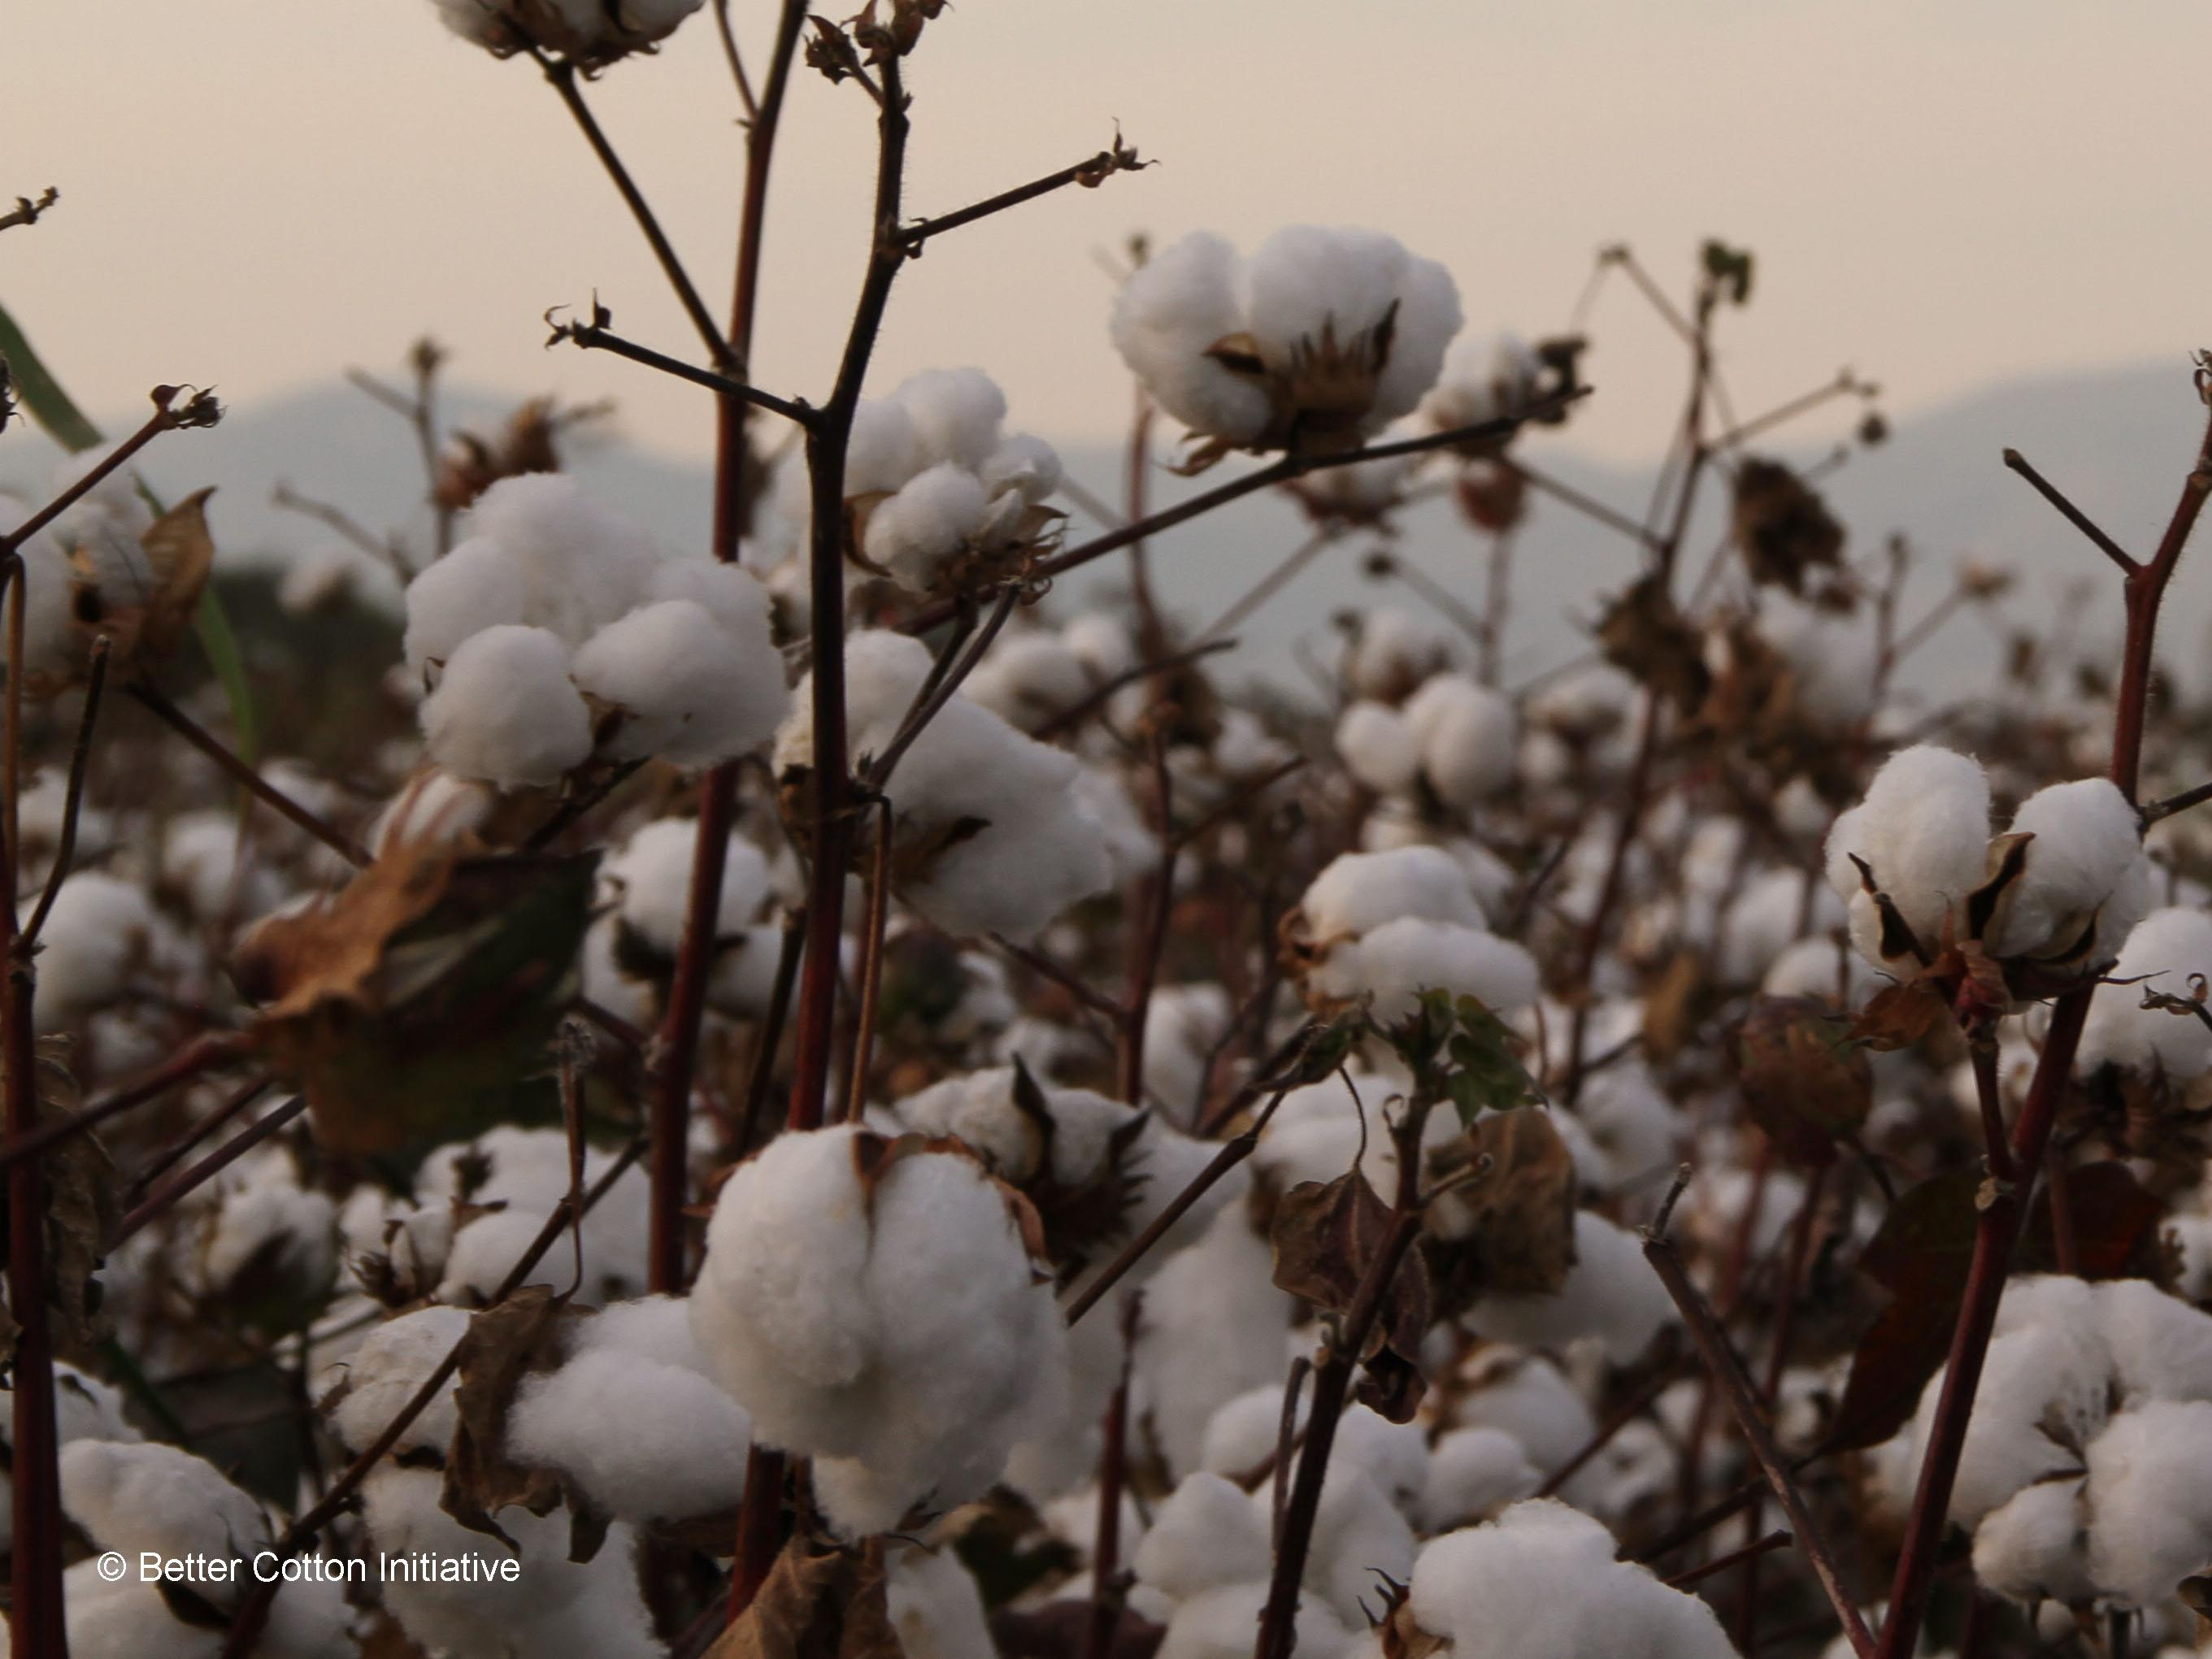 Cotton field at sunset © Better Cotton Initiative